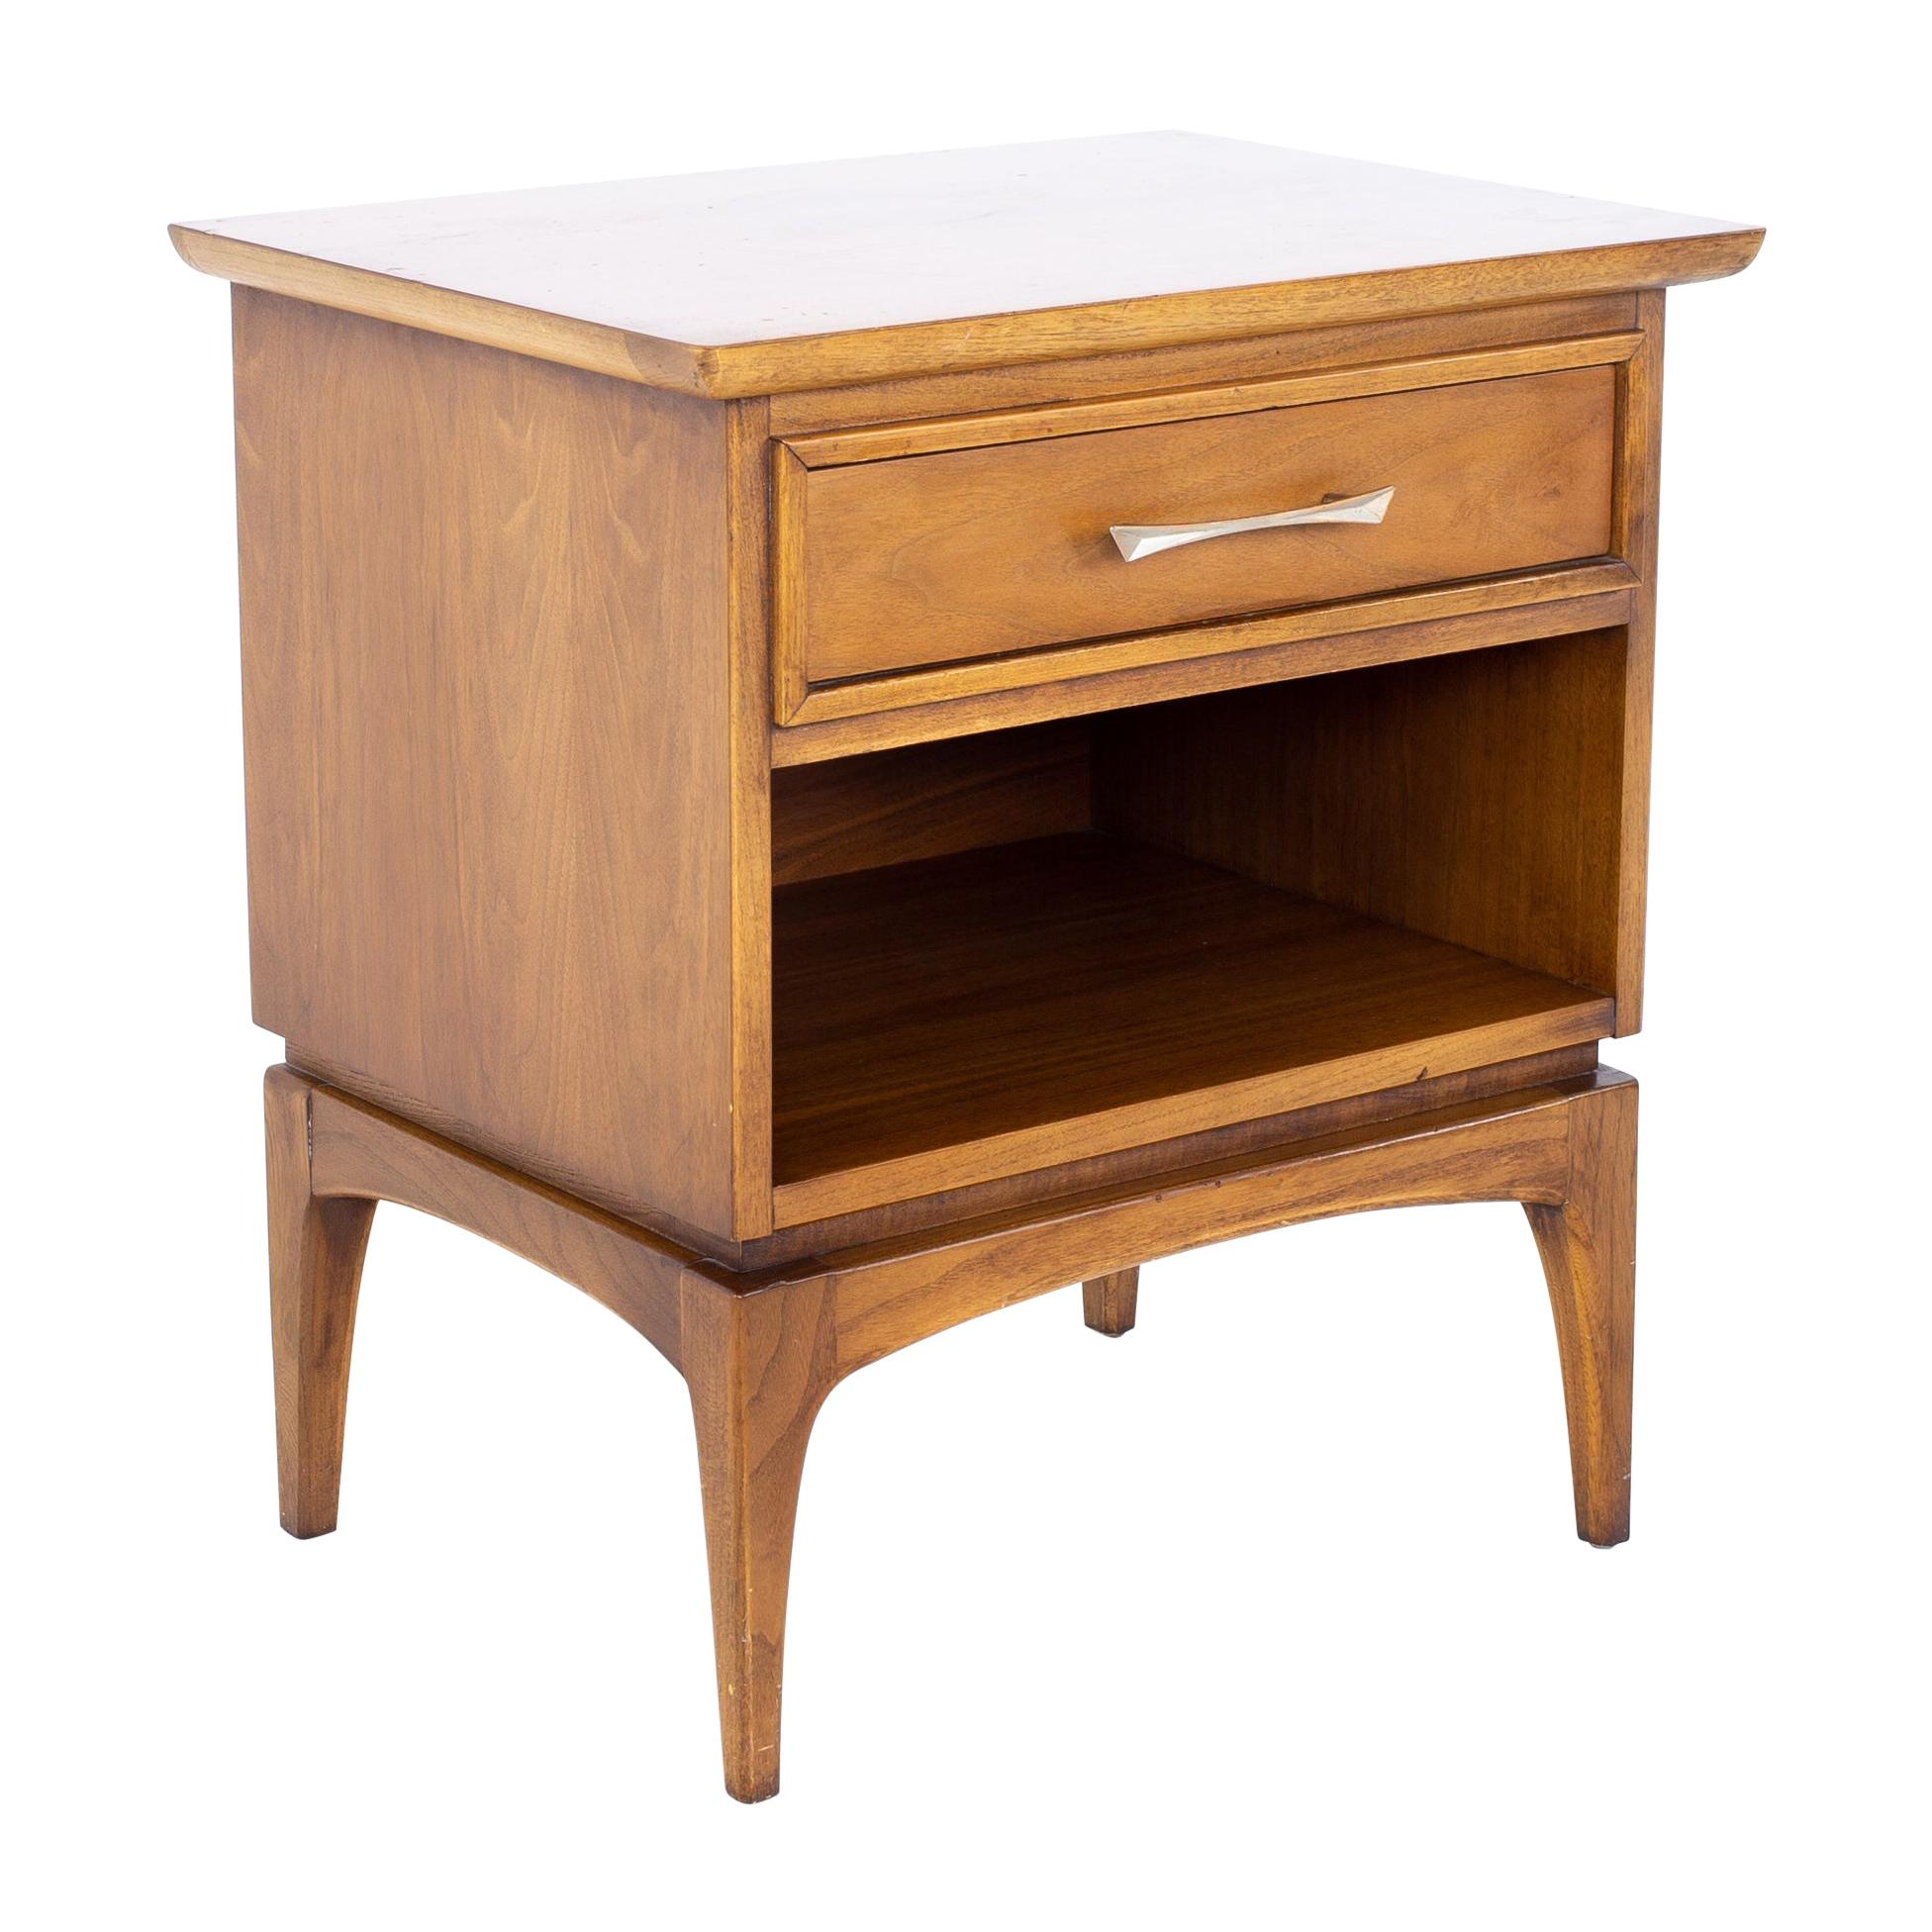 Kent Coffey the Wharton Mid Century Walnut Nightstand